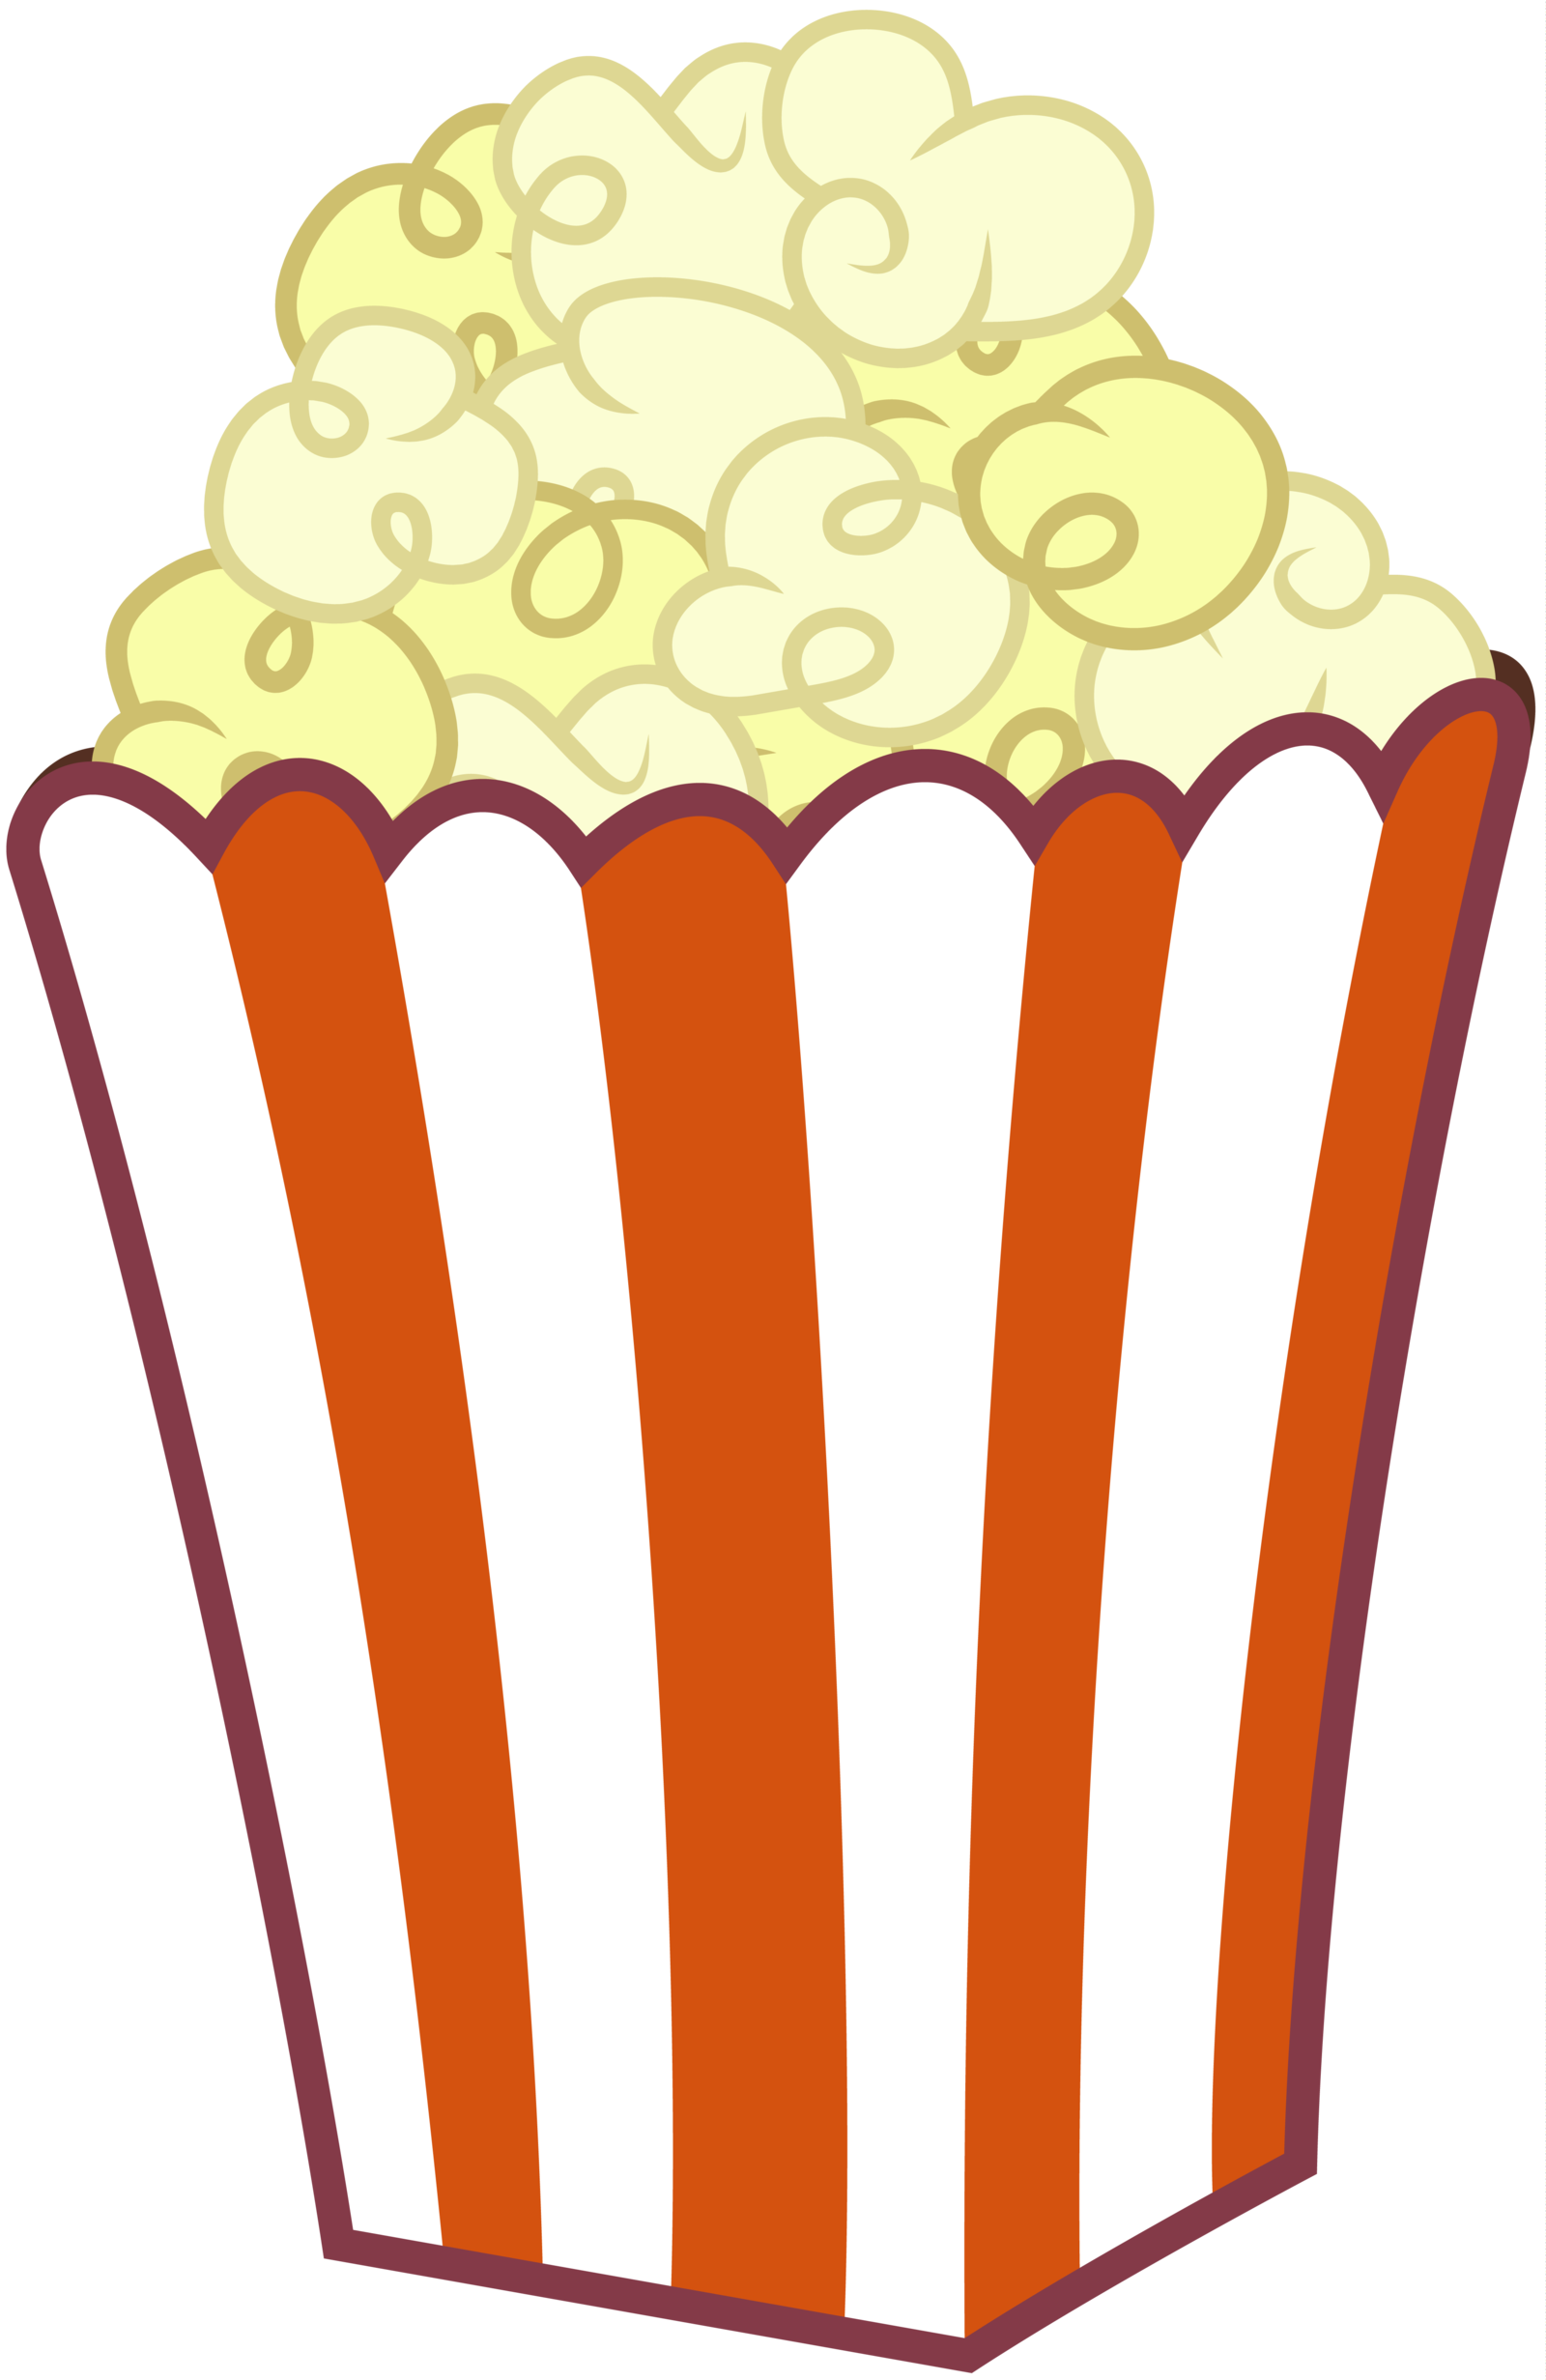 Free Movie Food Cliparts, Download Free Clip Art, Free Clip.